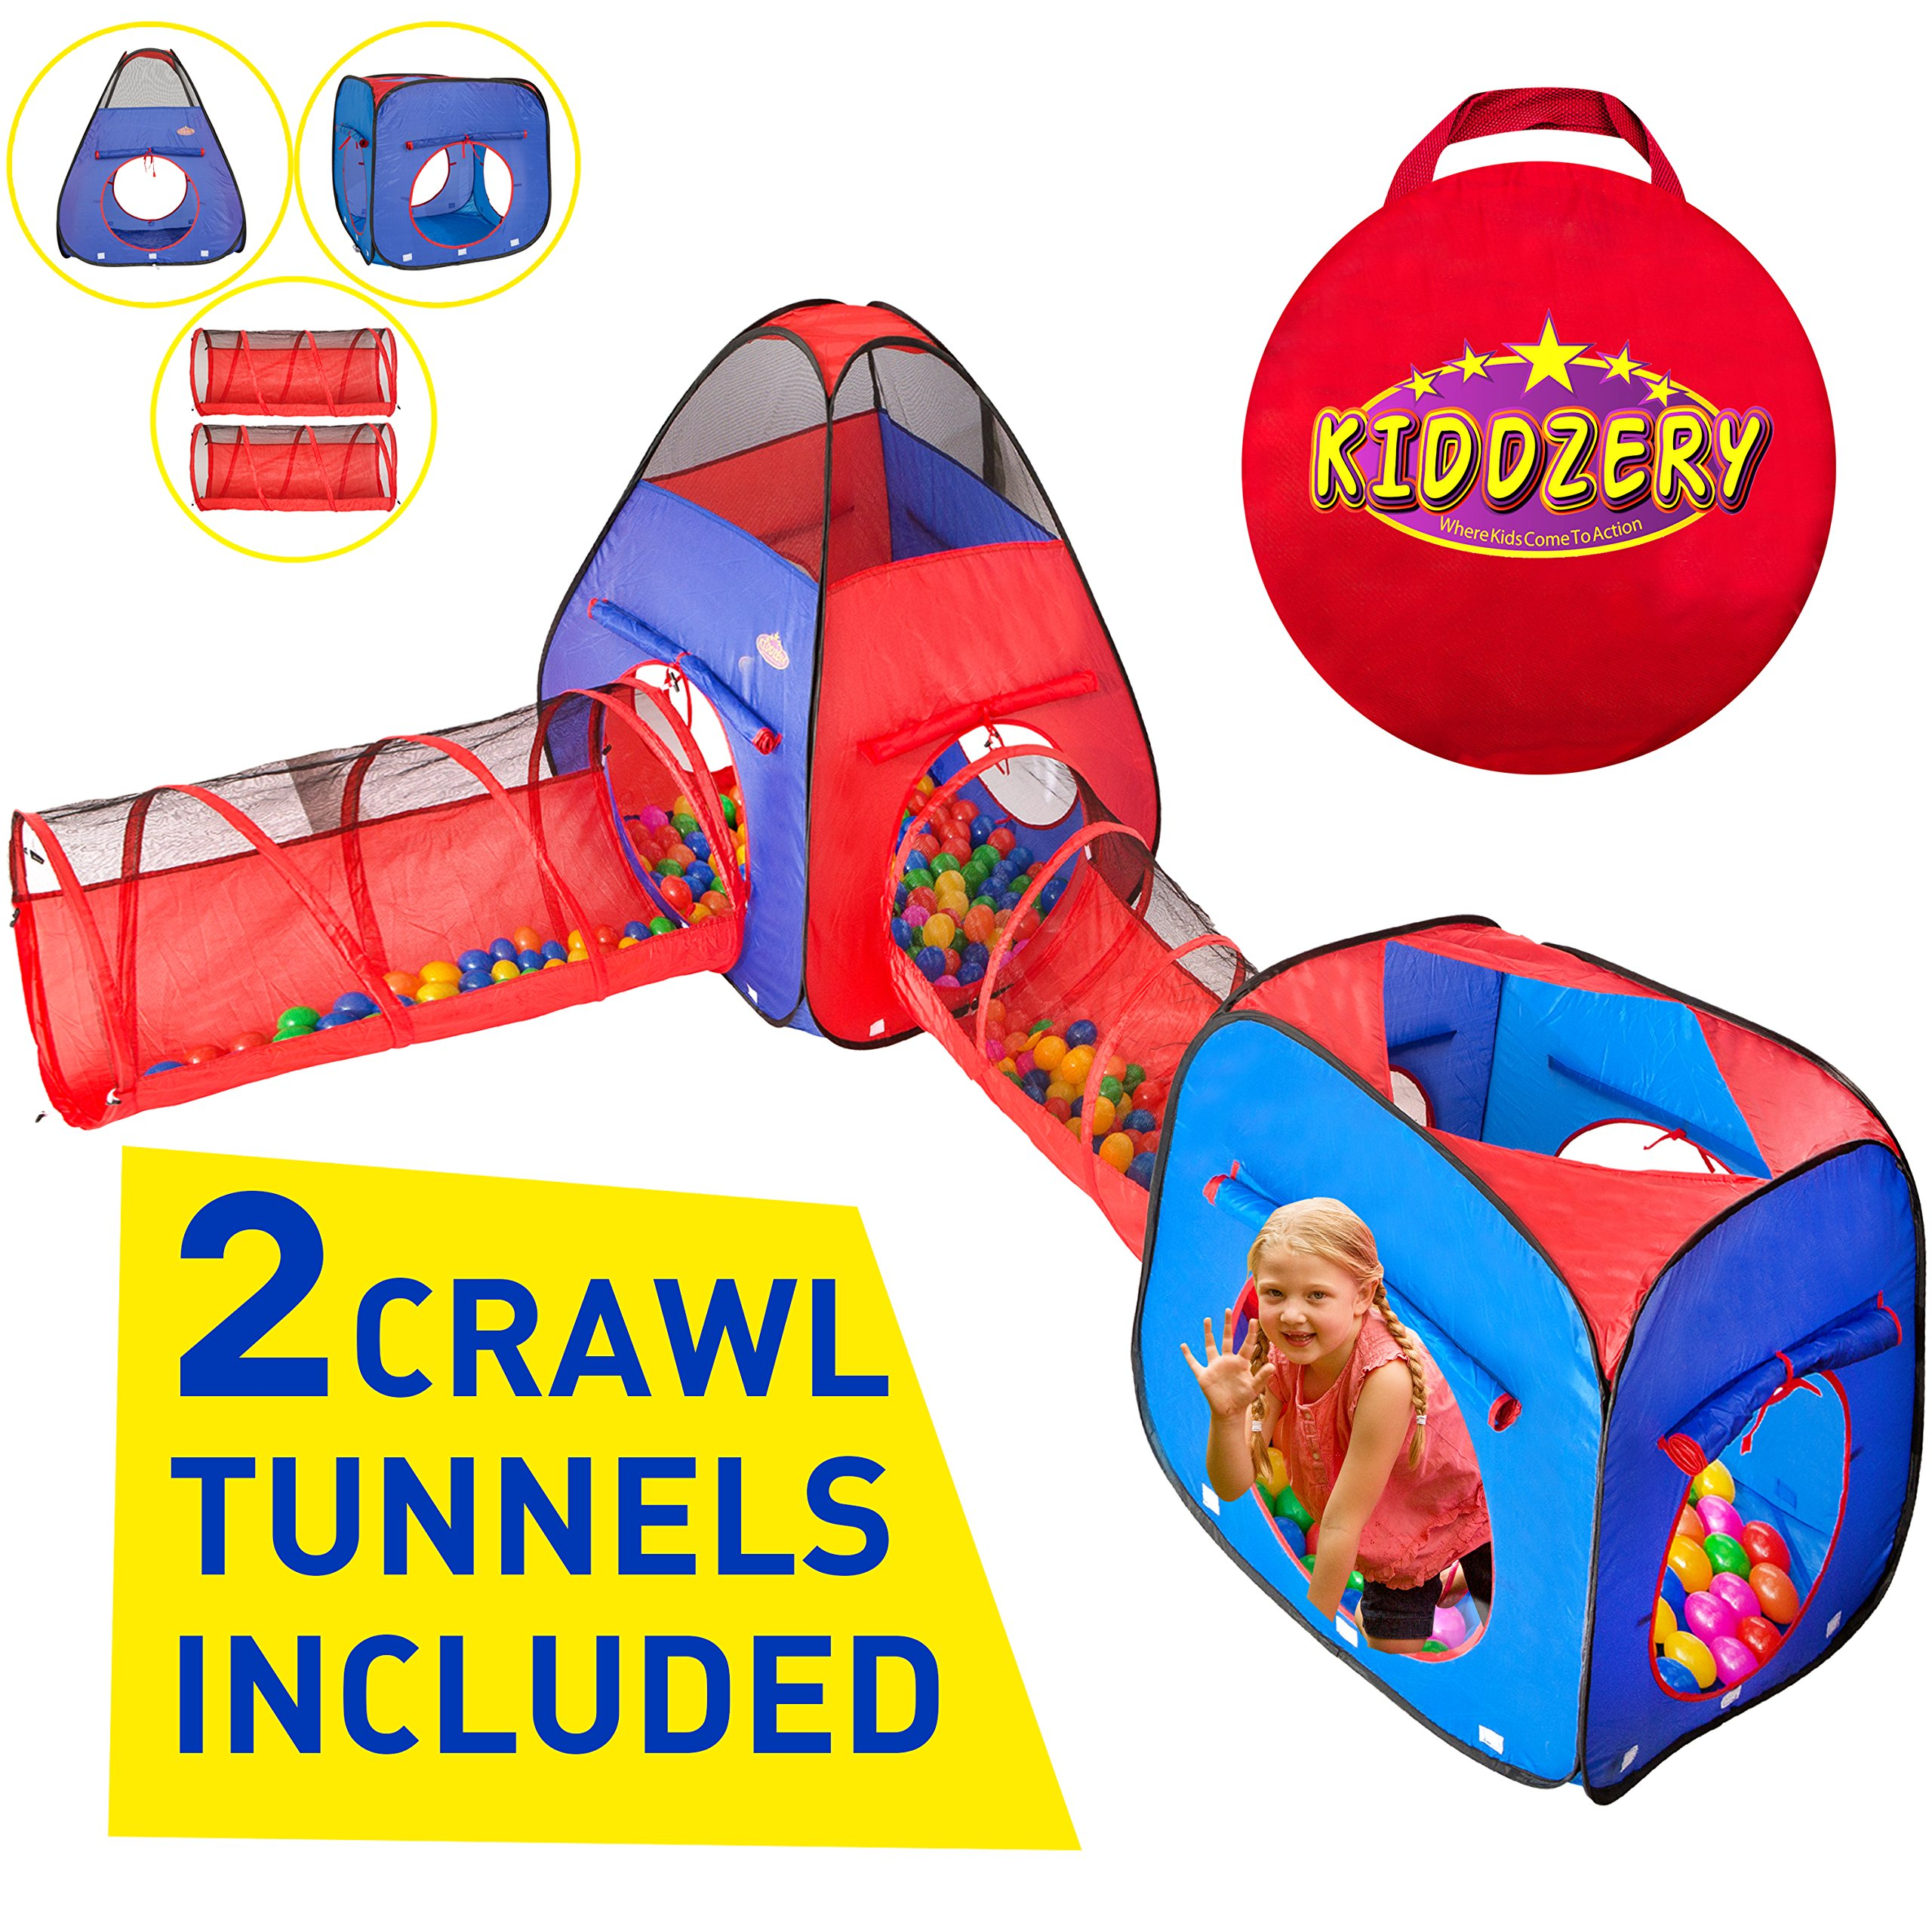 huge discount 5a780 a5a09 Details about Kiddzery 4pc Kids Play tent Pop Up Ball Pit - 2 Tents + 2  Crawl Tunnels -